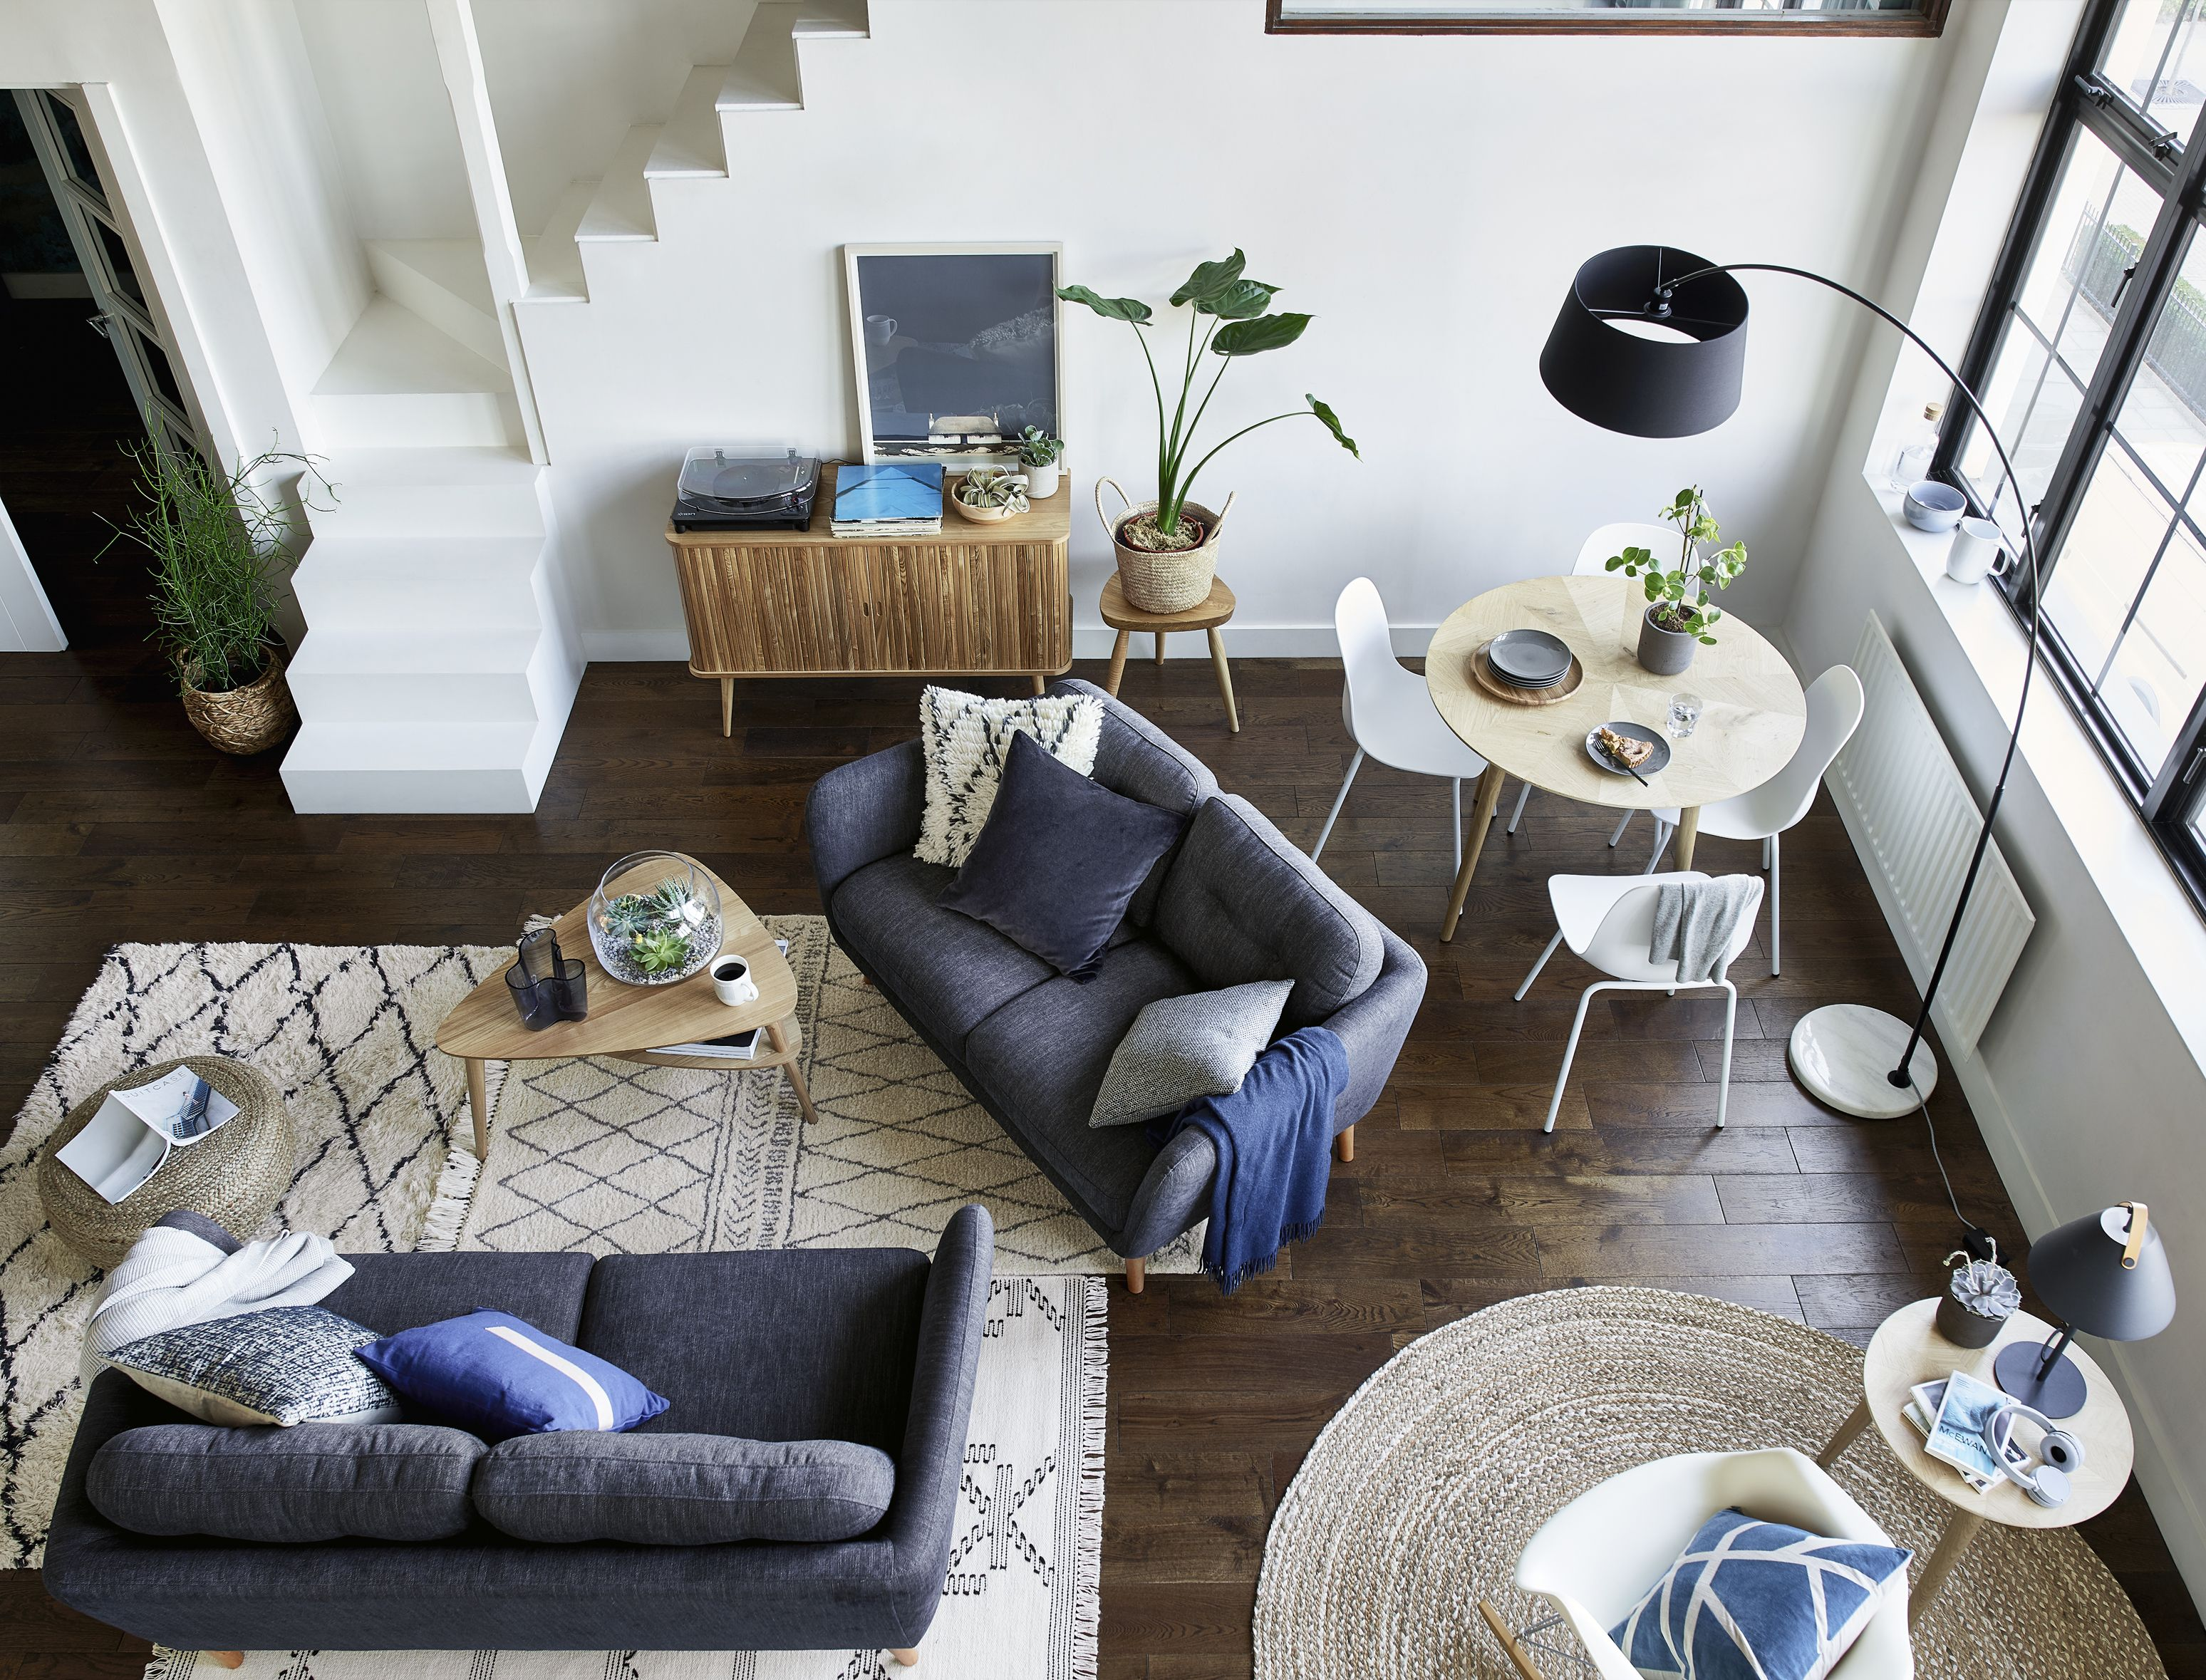 How to create subtle zones in a small living room